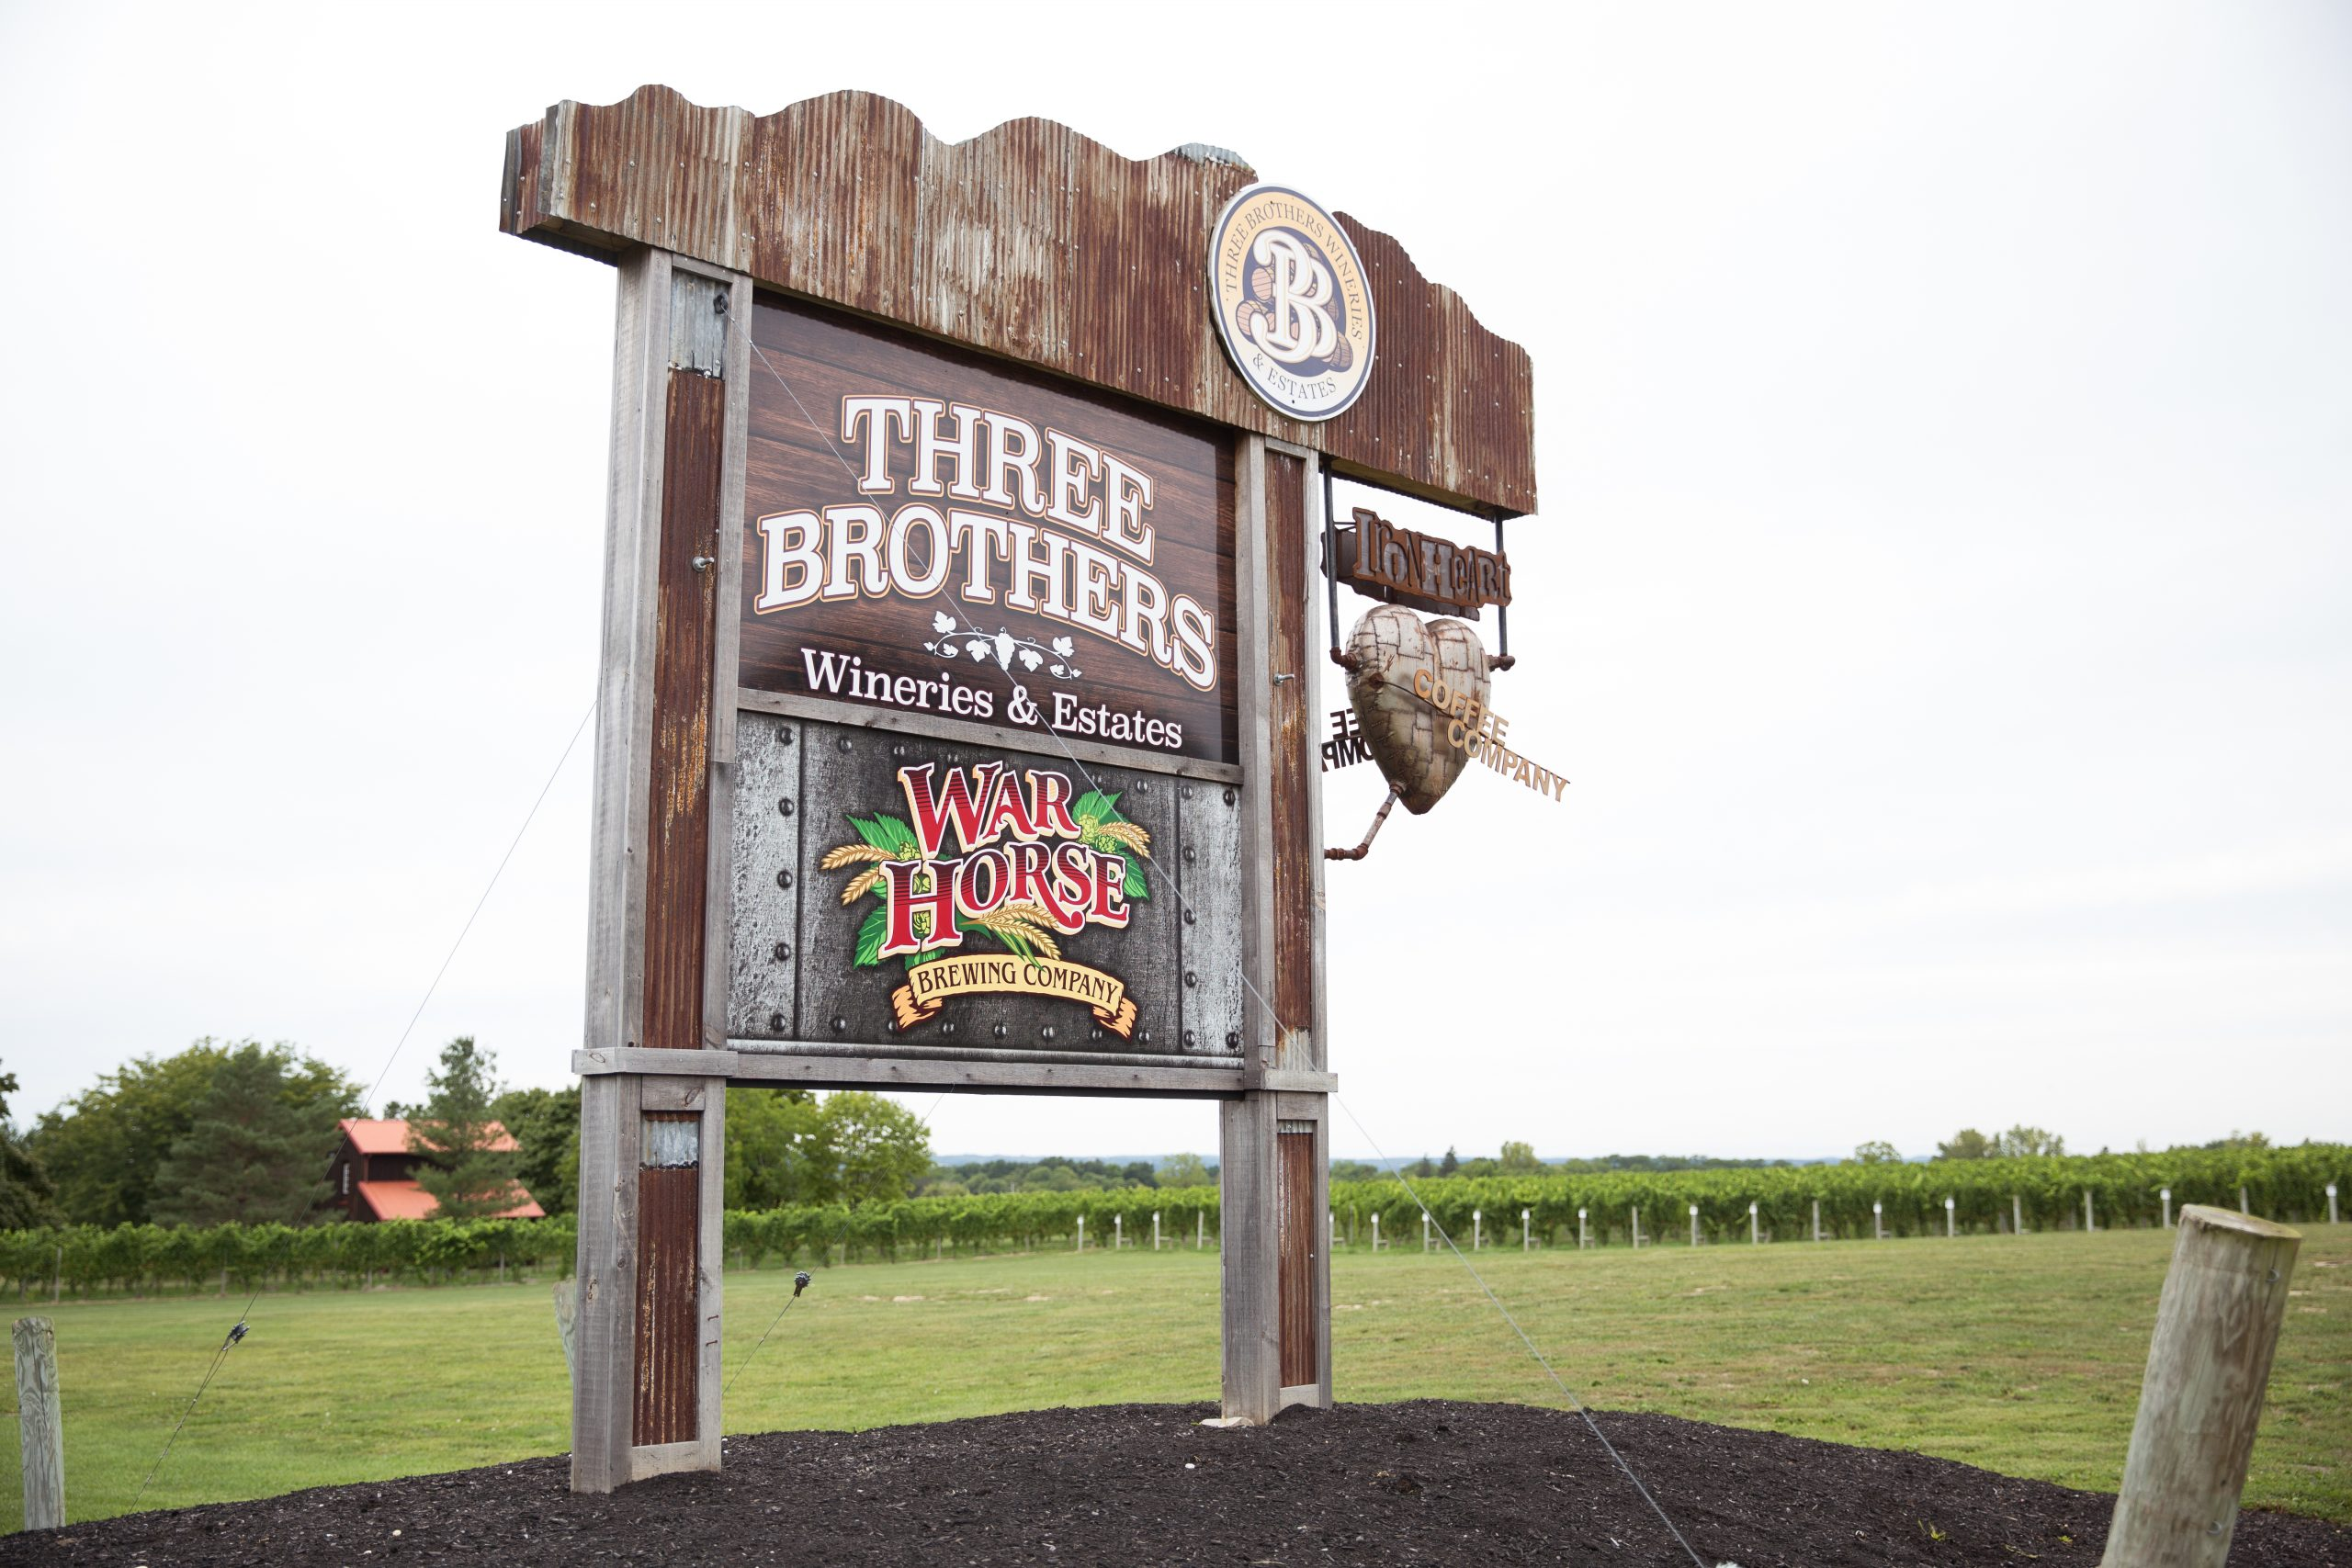 A Look Inside Three Brothers Winery and Estate